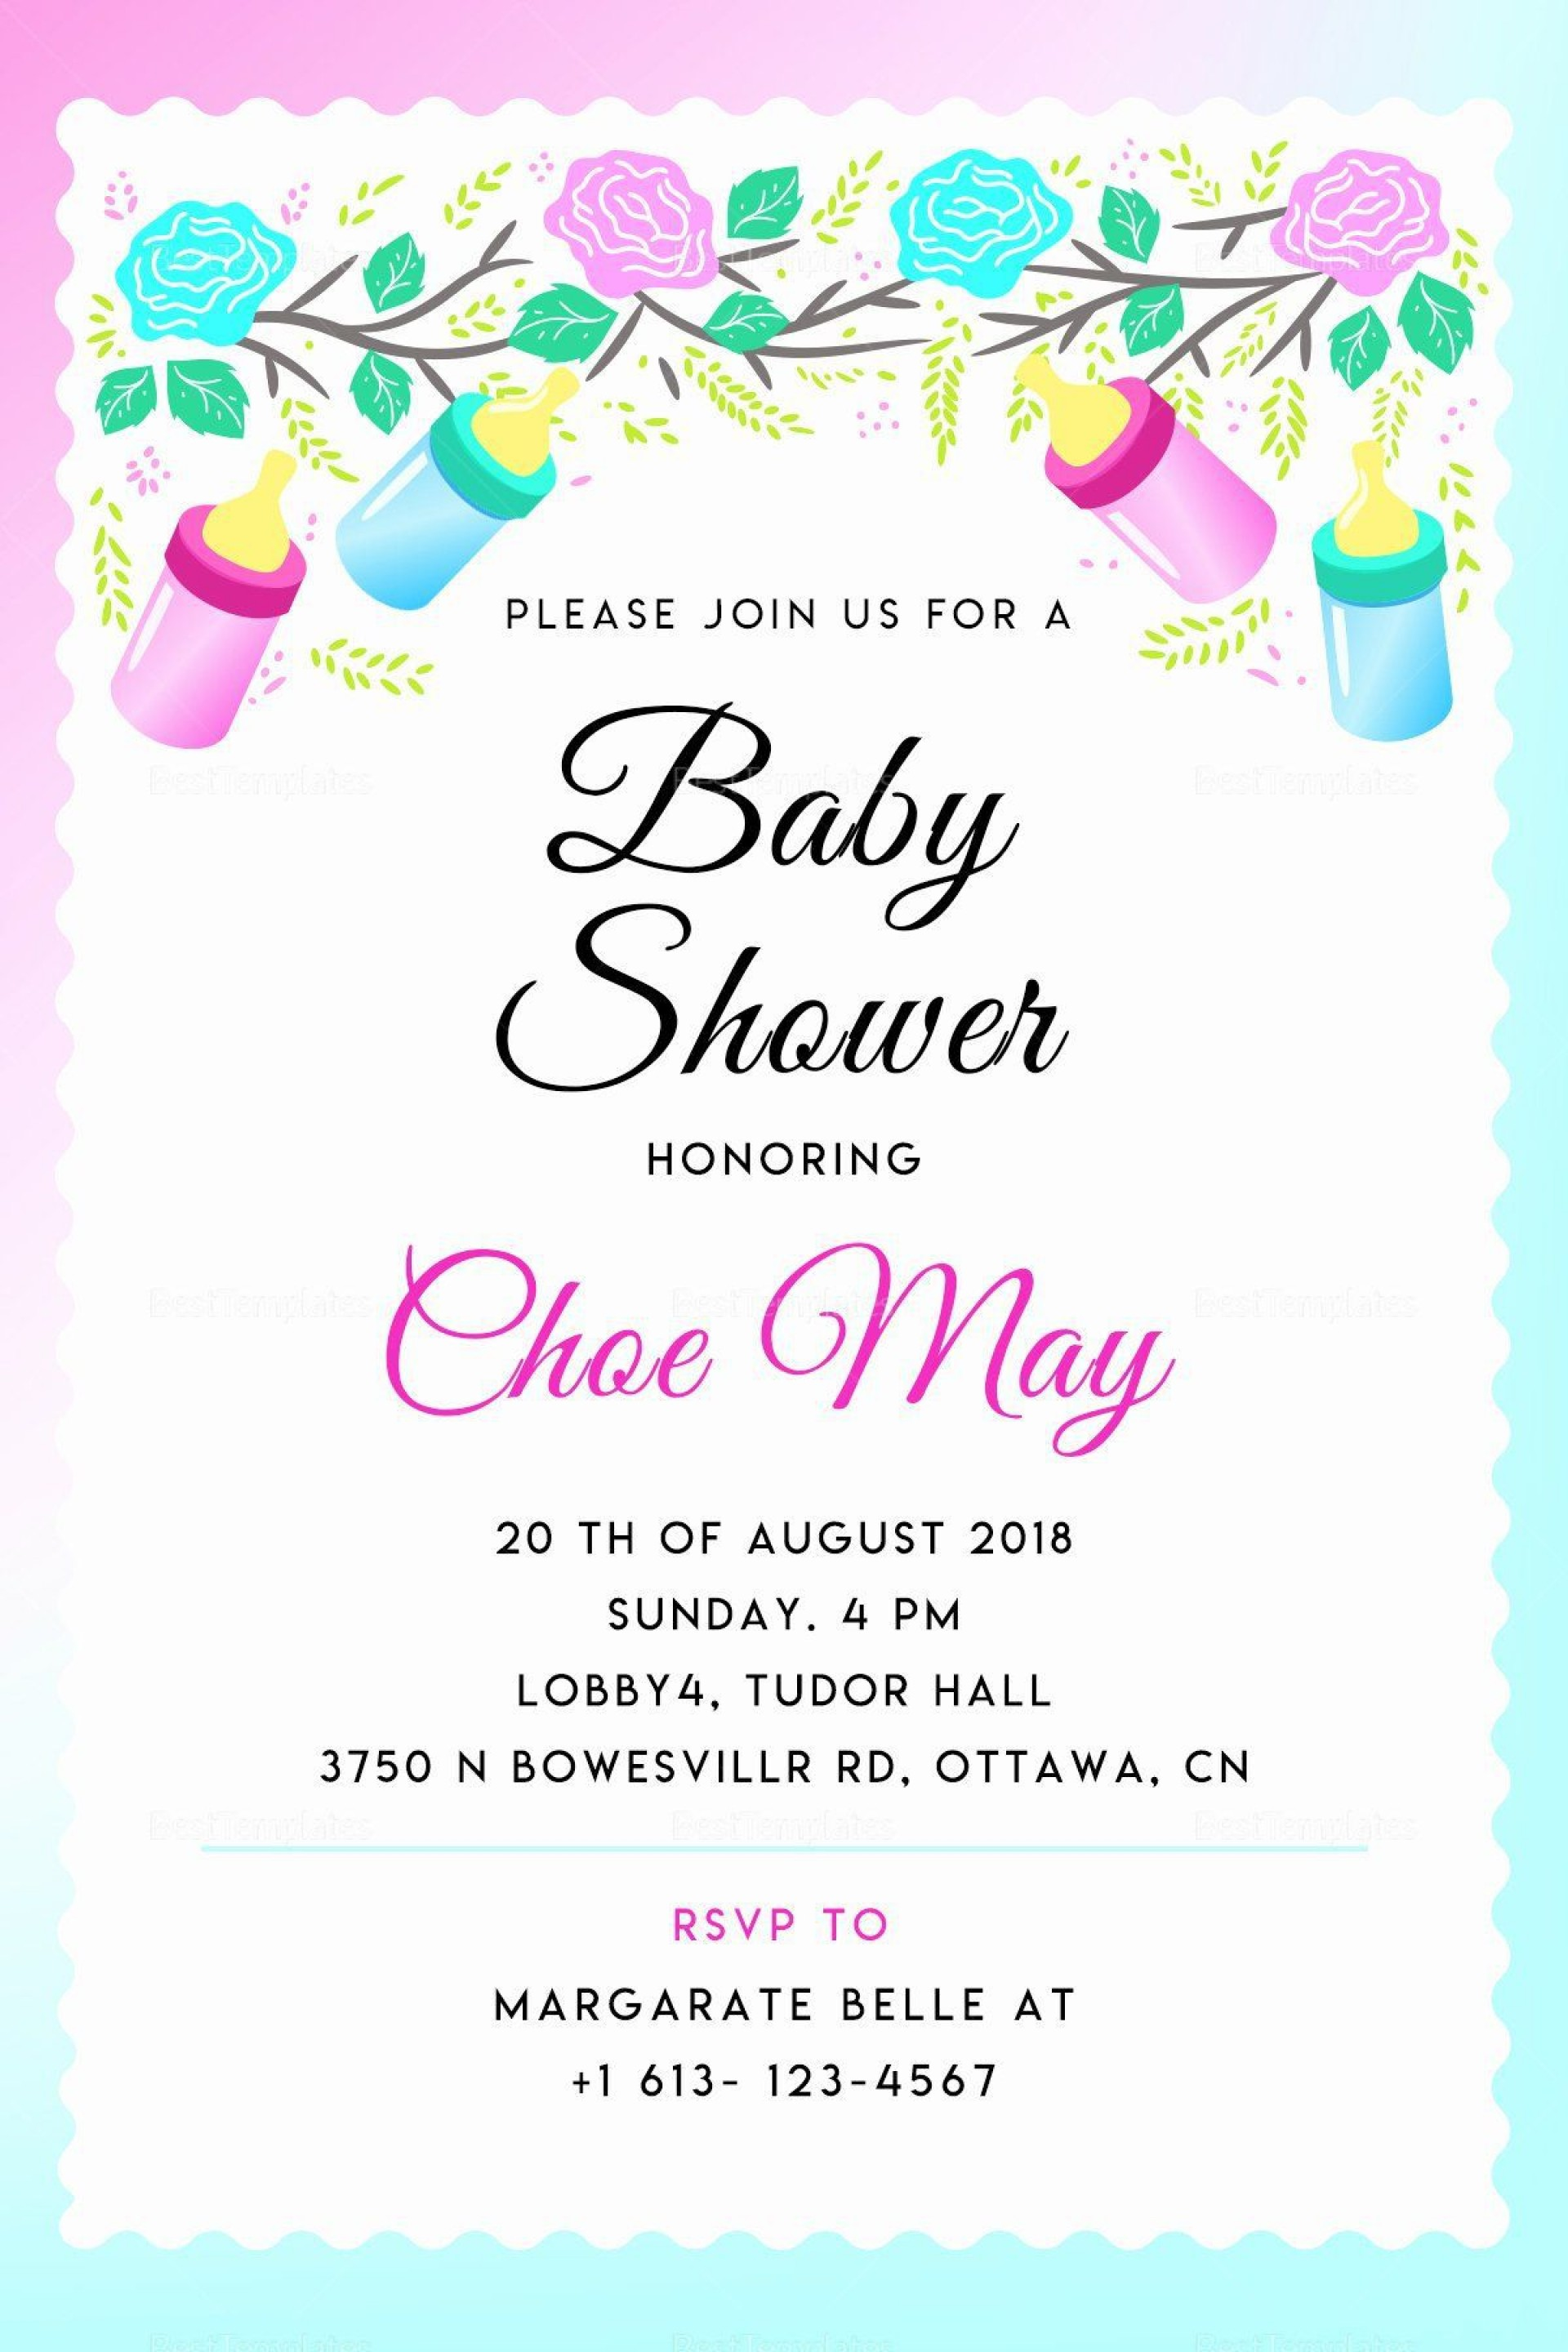 000 Sensational Baby Shower Invitation Template Word Picture  Office Wording Sample Work Download1920